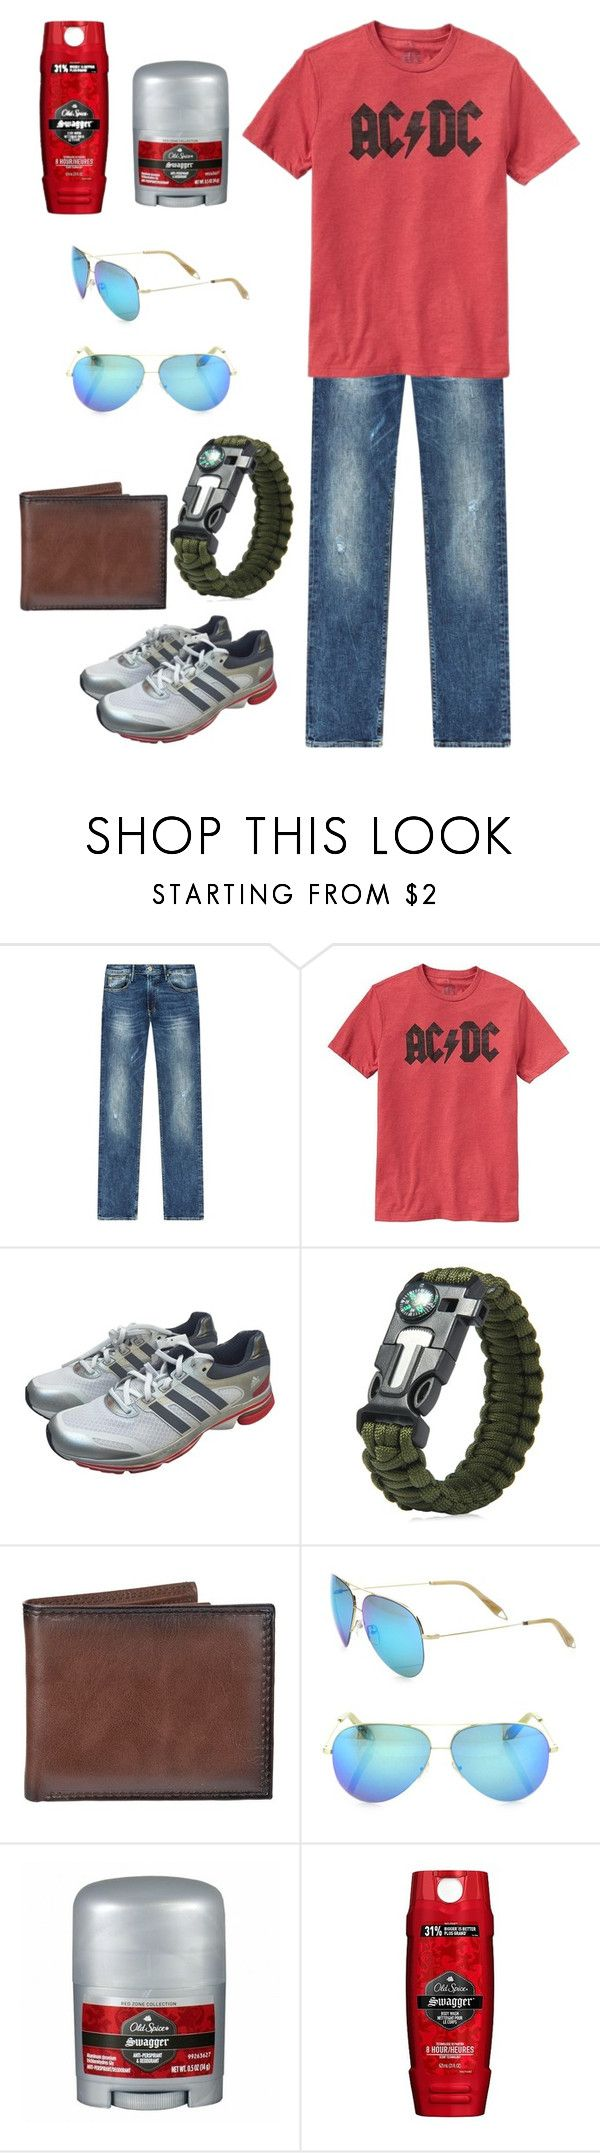 """""""MASON"""" by gracegrimm on Polyvore featuring Armani Jeans, Gap, adidas, Croft & Barrow, Victoria Beckham, Old Spice, men's fashion and menswear"""